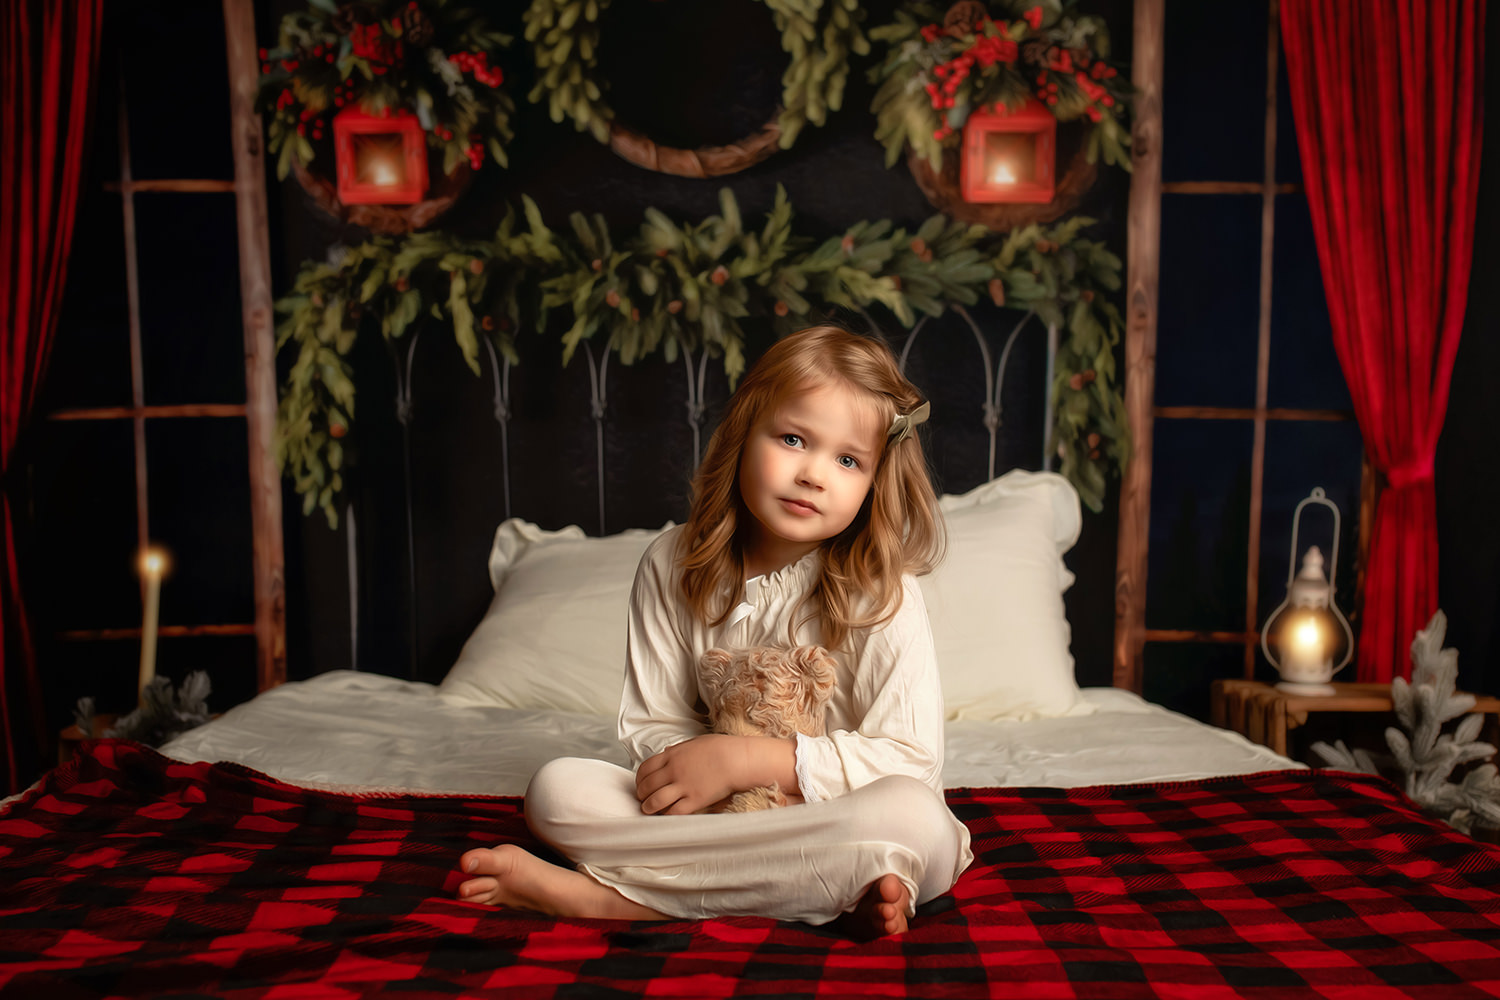 Rochester Newborn Photographer - Christmas Mini Session - Holiday Snuggle Sessions - Child in Pajamas on bed at Christmas